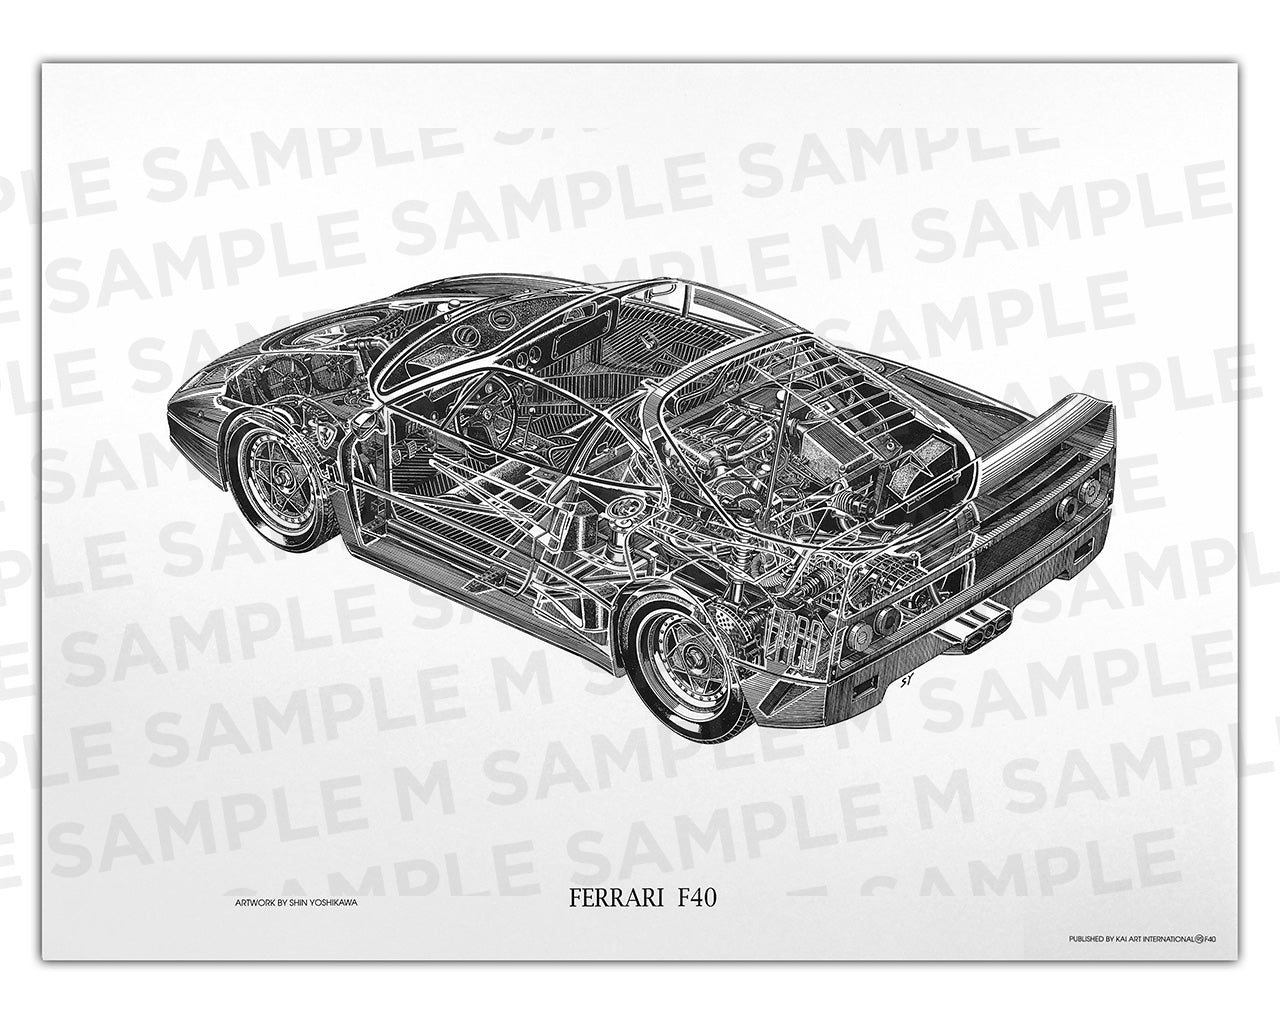 Authentic Ferrari F40 cutaway drawing print by renowned automotive artist Shin Yoshikawa